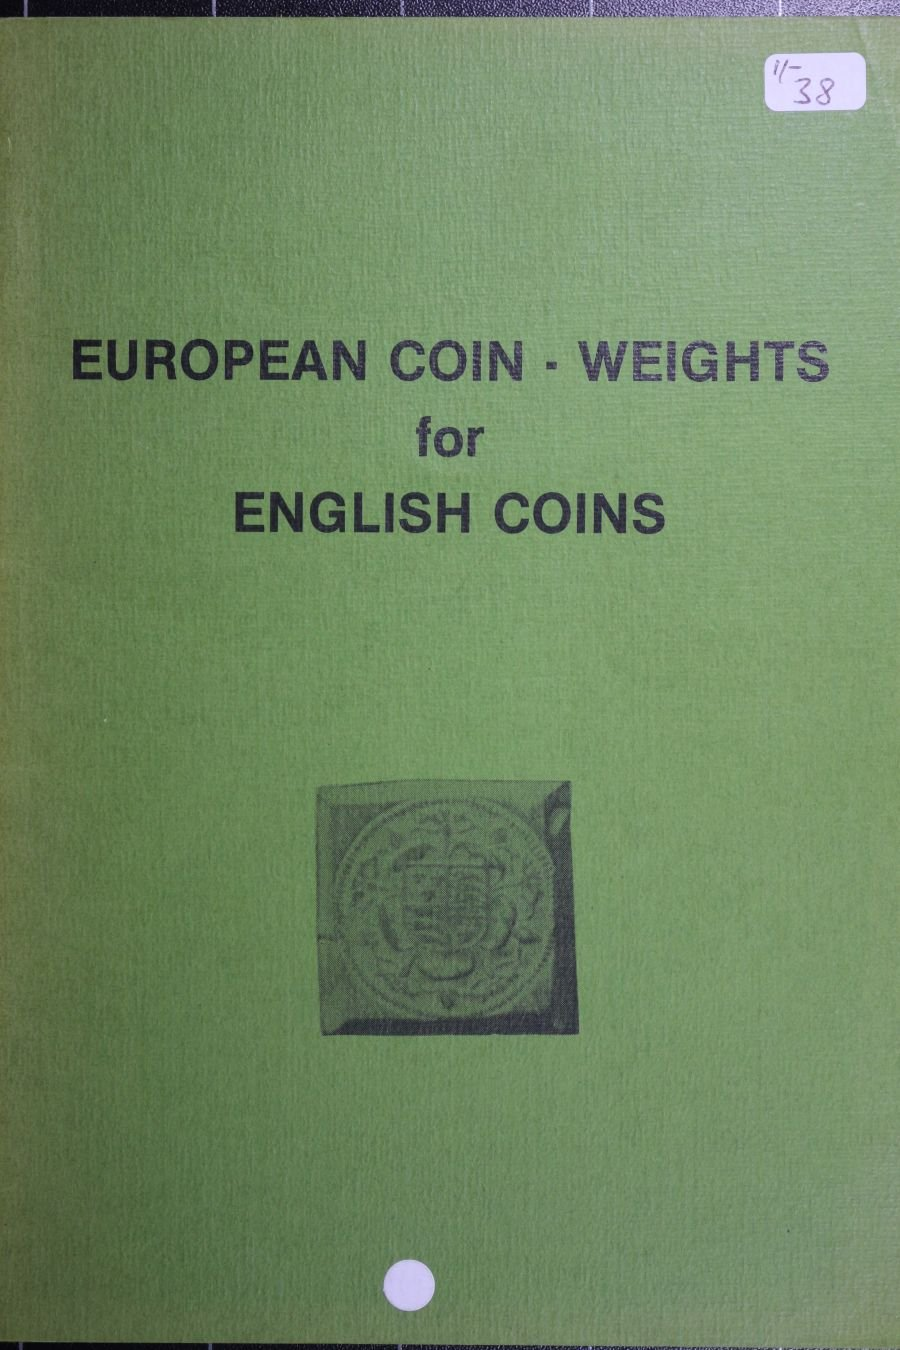 European coin-weights for English coins by Gerard Houben